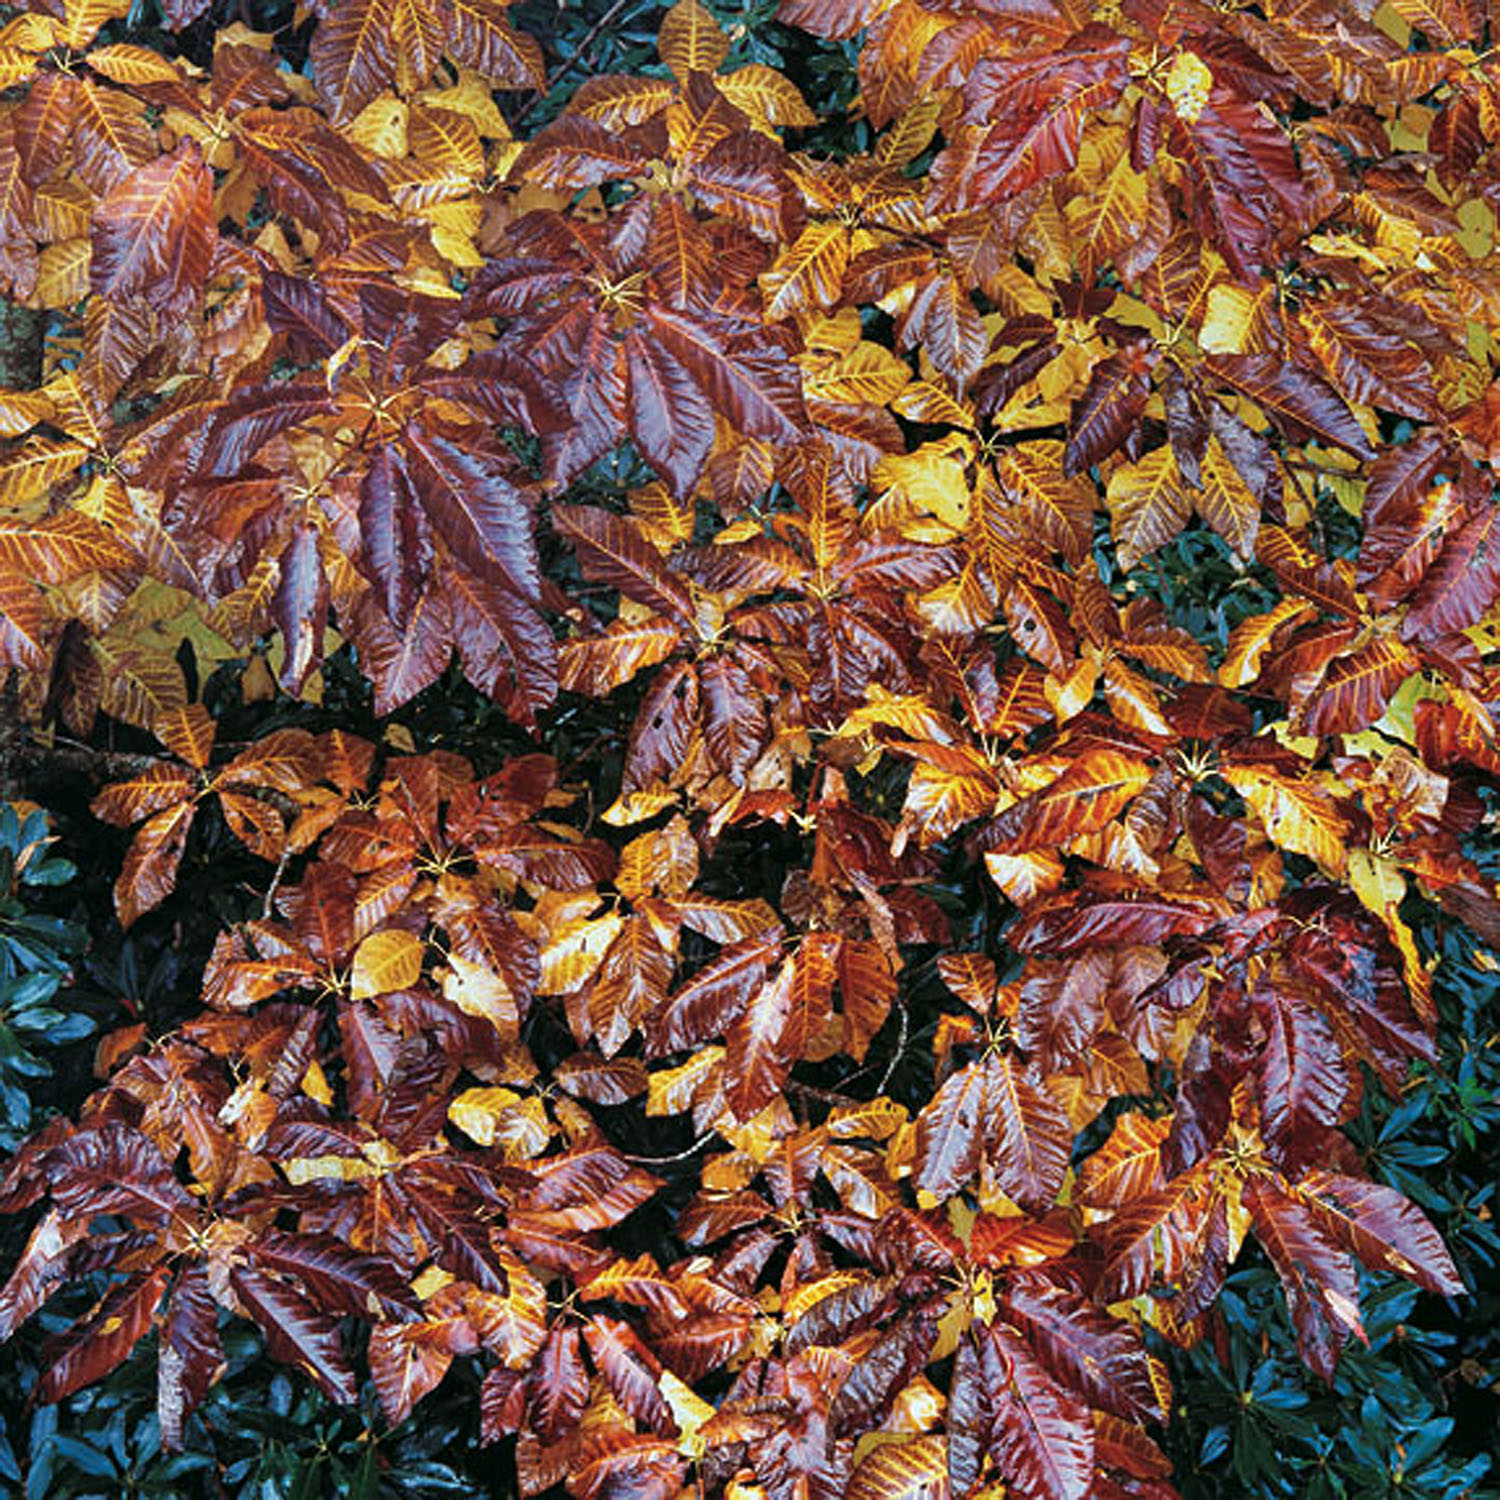 """Christopher Burkett """"Bronzed Buckeye Leaves,"""" North Carolina     Cibachrome Photograph     Available in 20"""" x 20"""", 30"""" x 30"""", and 40"""" x 40"""""""